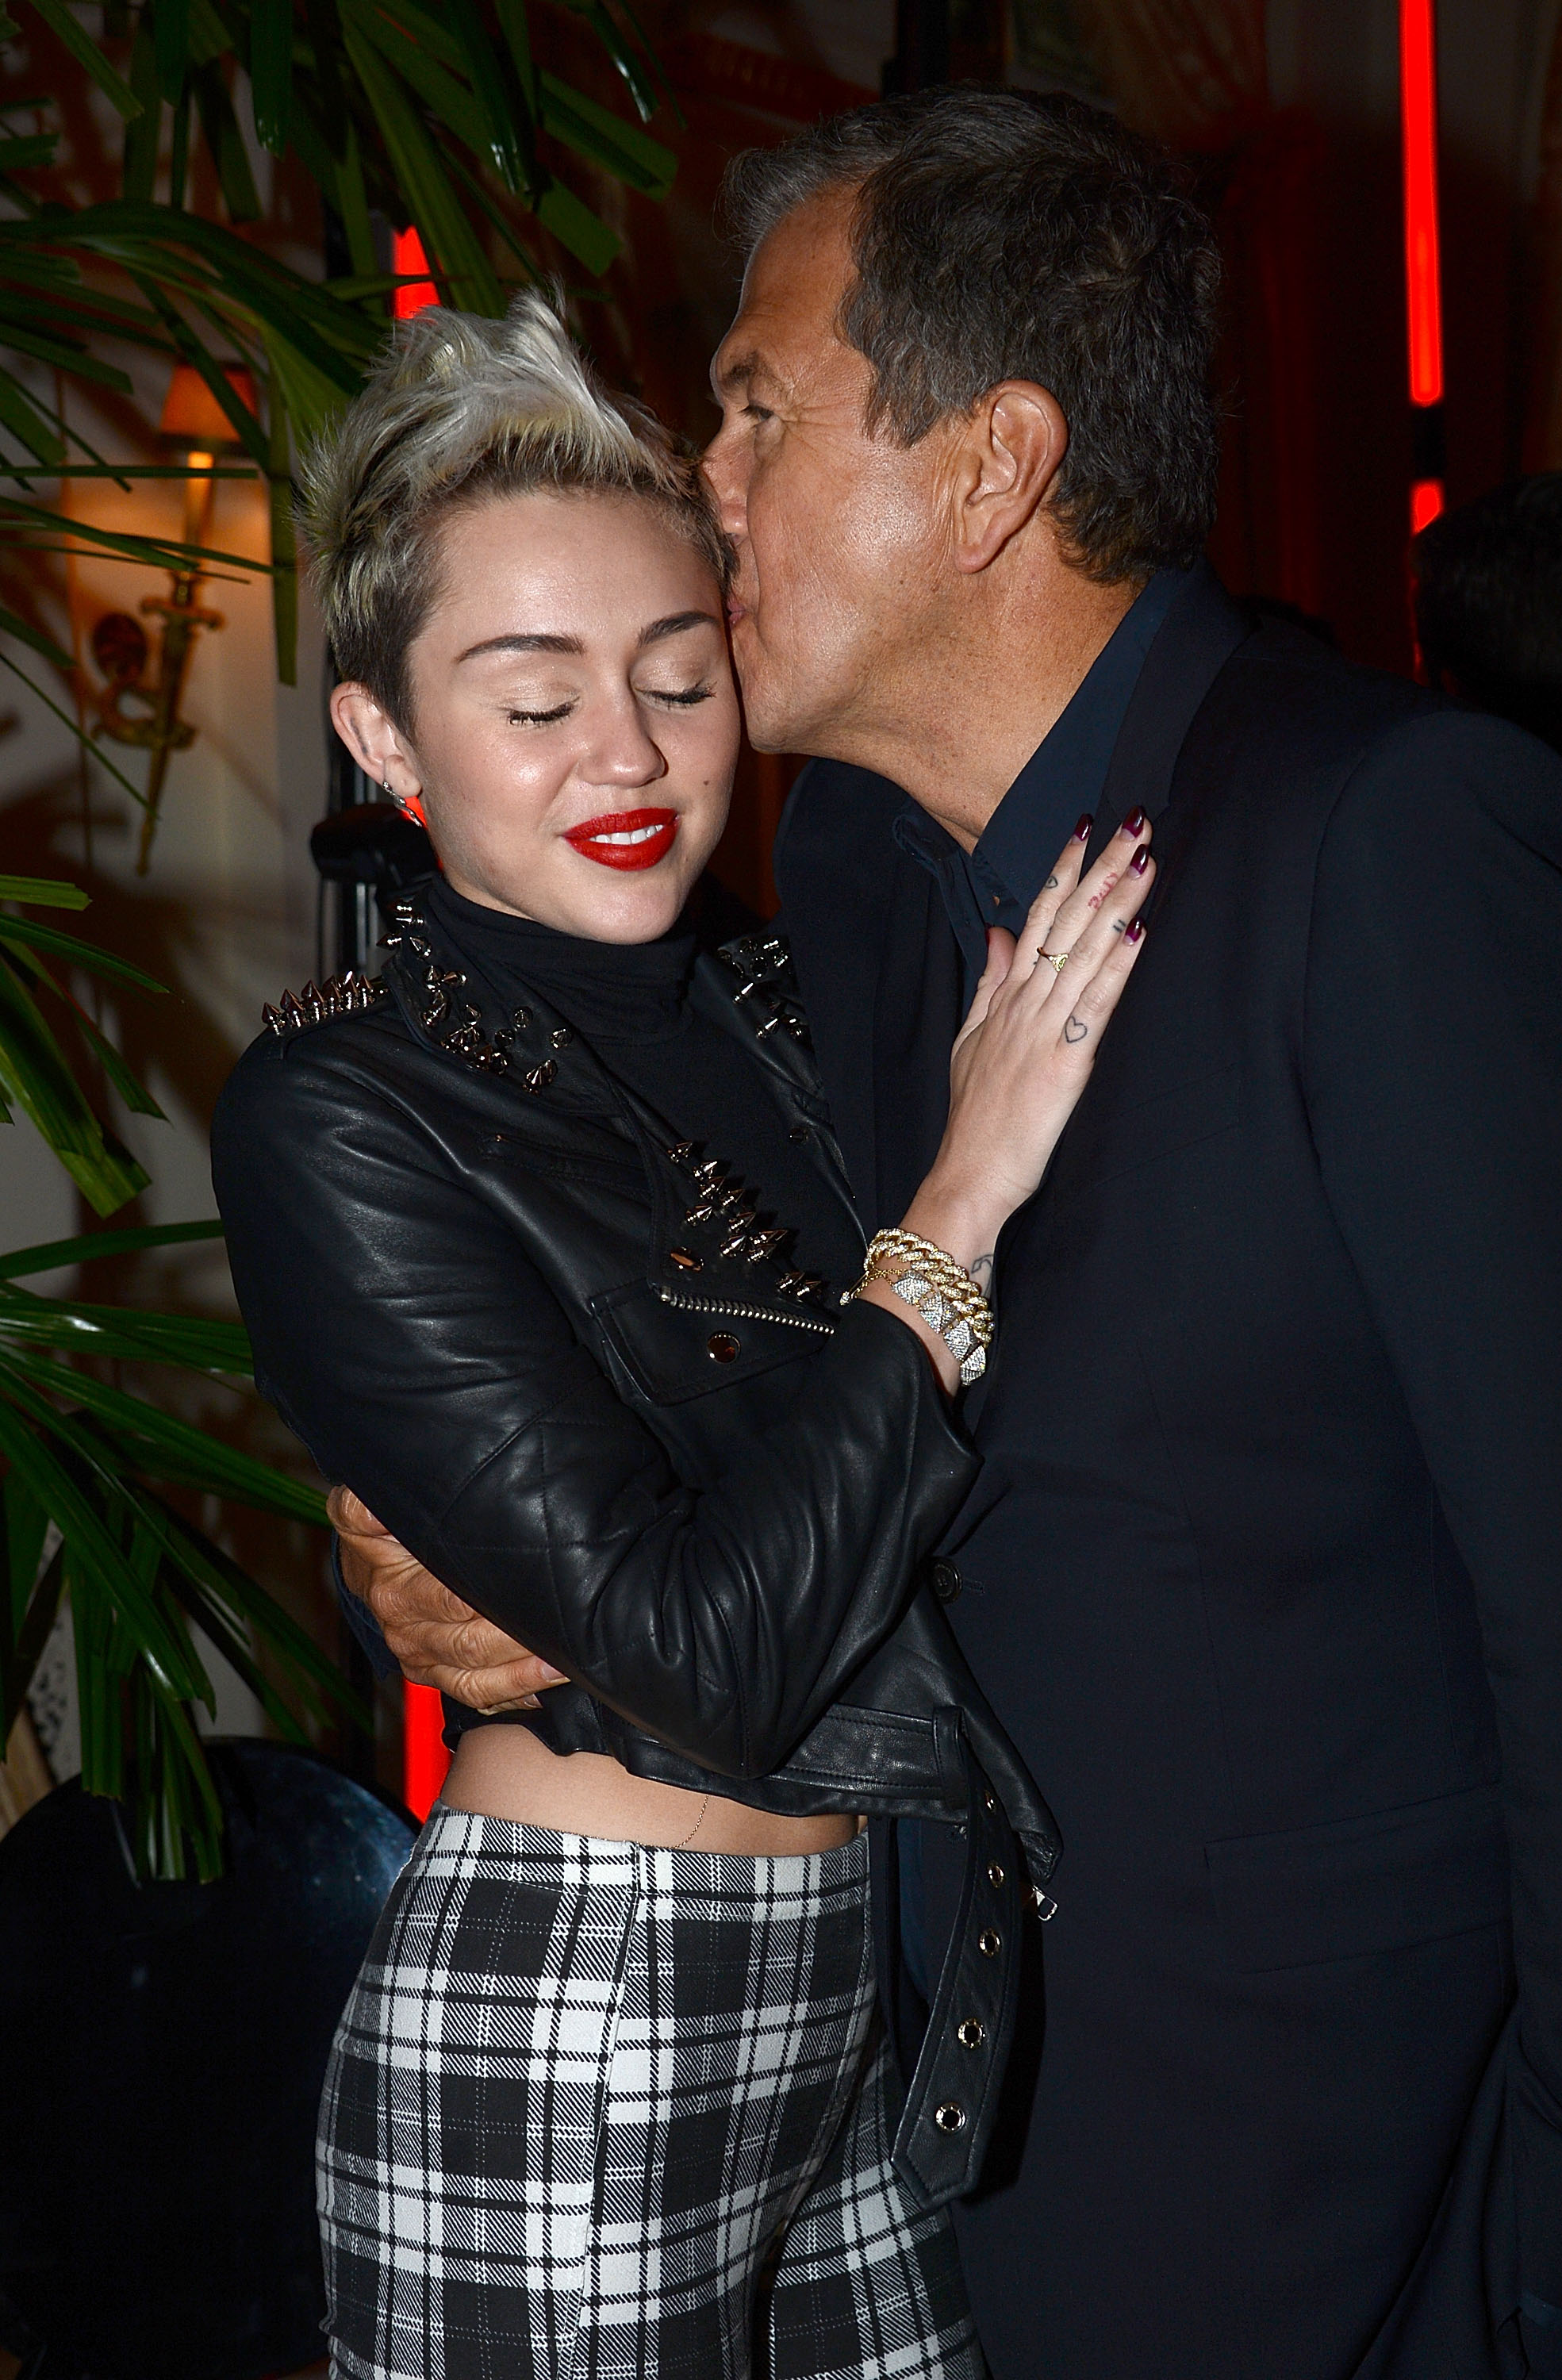 Miley Cyrus and Mario Testino shared a hug at the party for his PRISM exhibit.